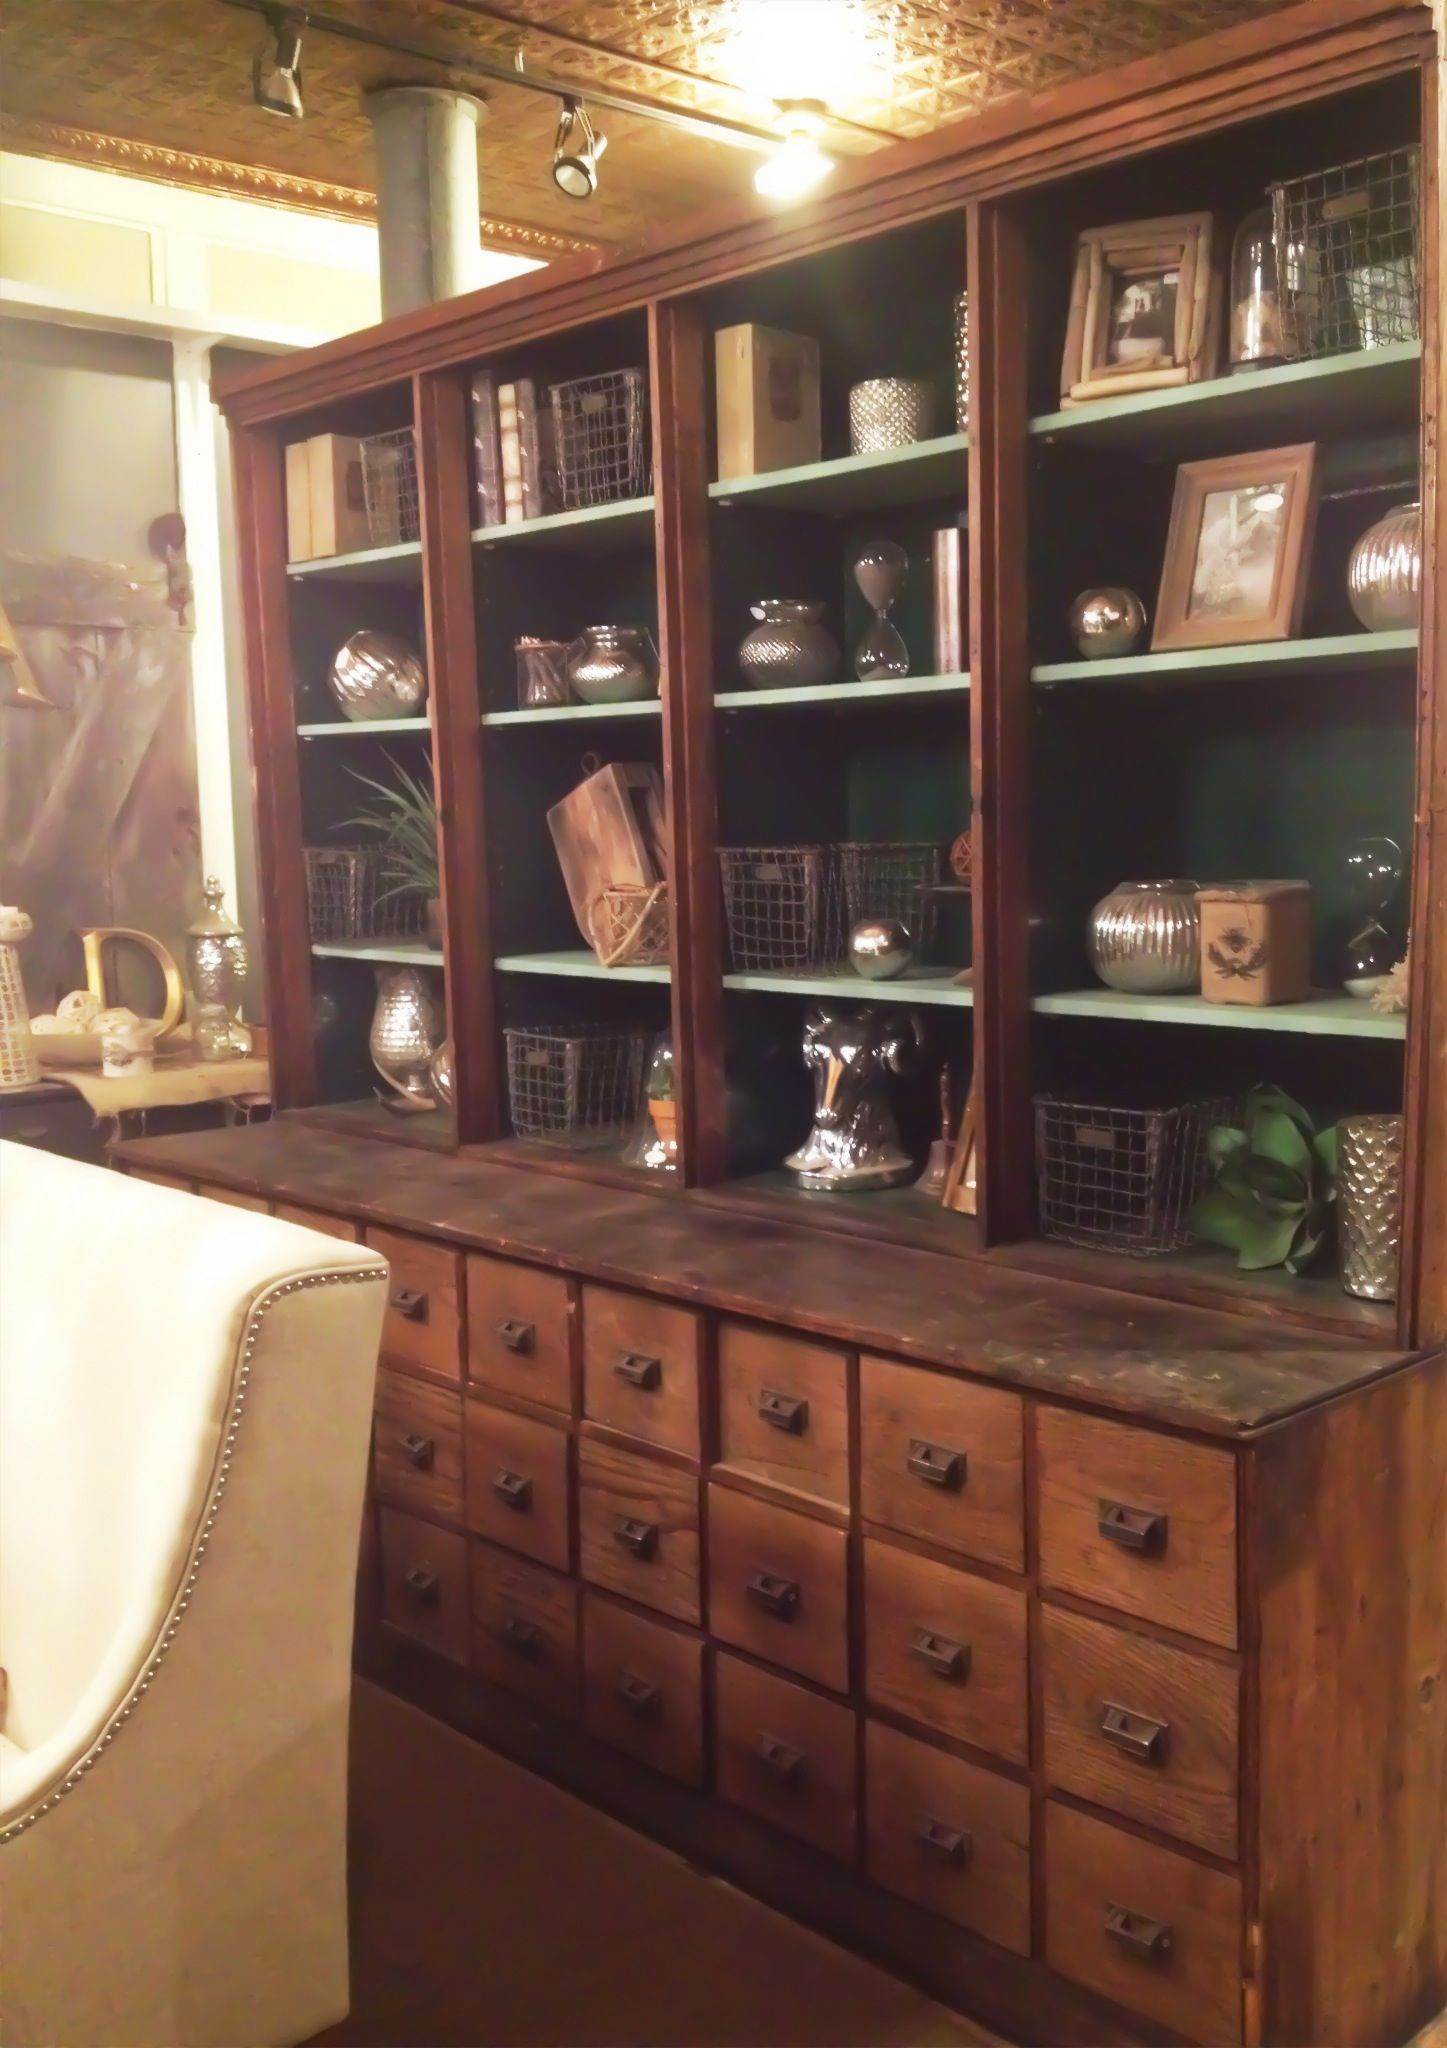 Antique Pharmacy Apothecary Cabinet Available Available As Is Or Refinished Antiquefurnitures In 2020 Kitchen Cabinets For Sale Cabinets For Sale Apothecary Cabinet